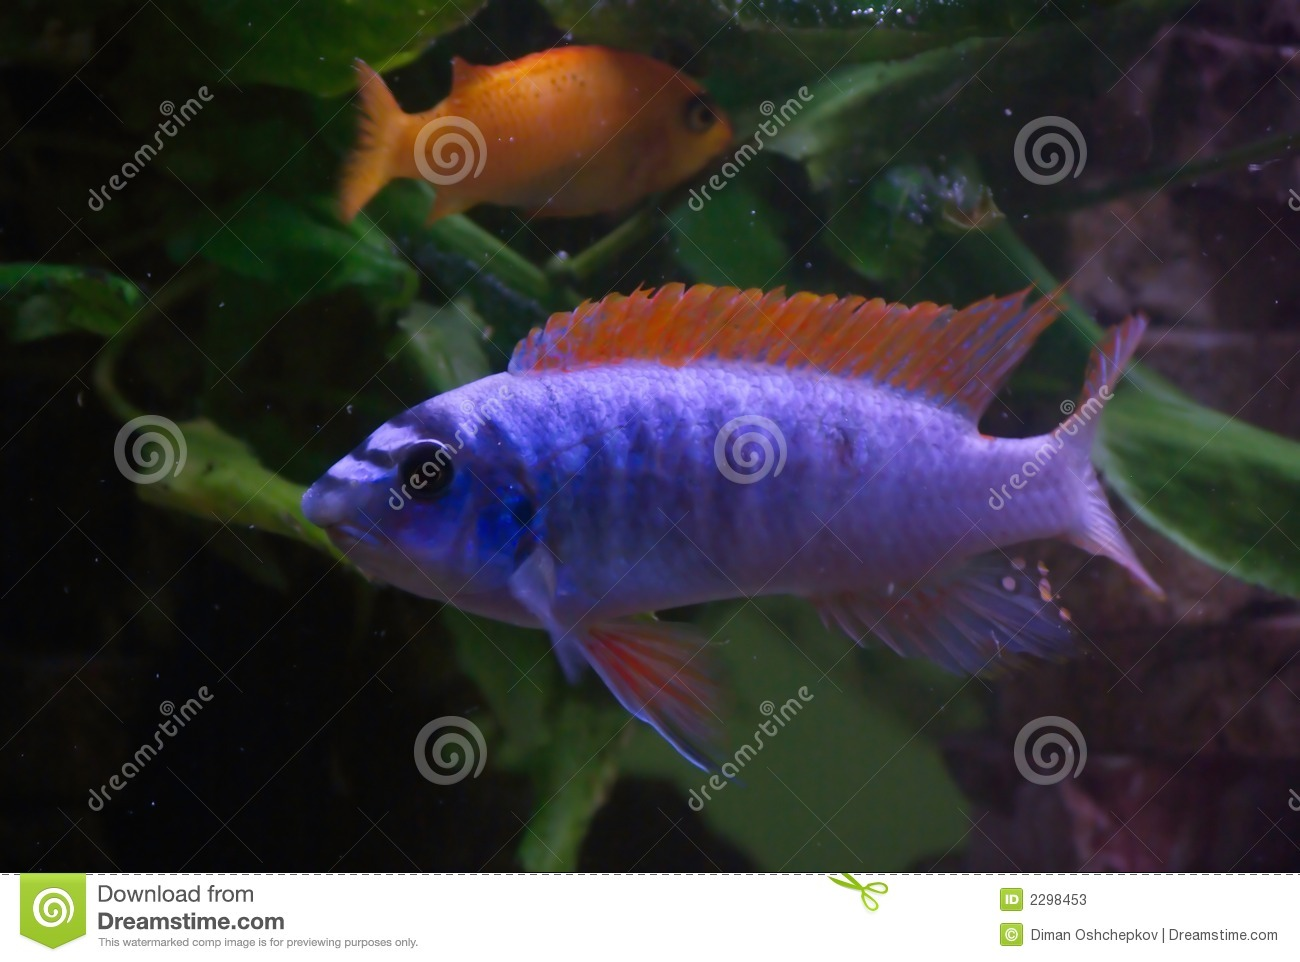 Blue Fish Red Fins Stock Image Image Of Eyes Bright